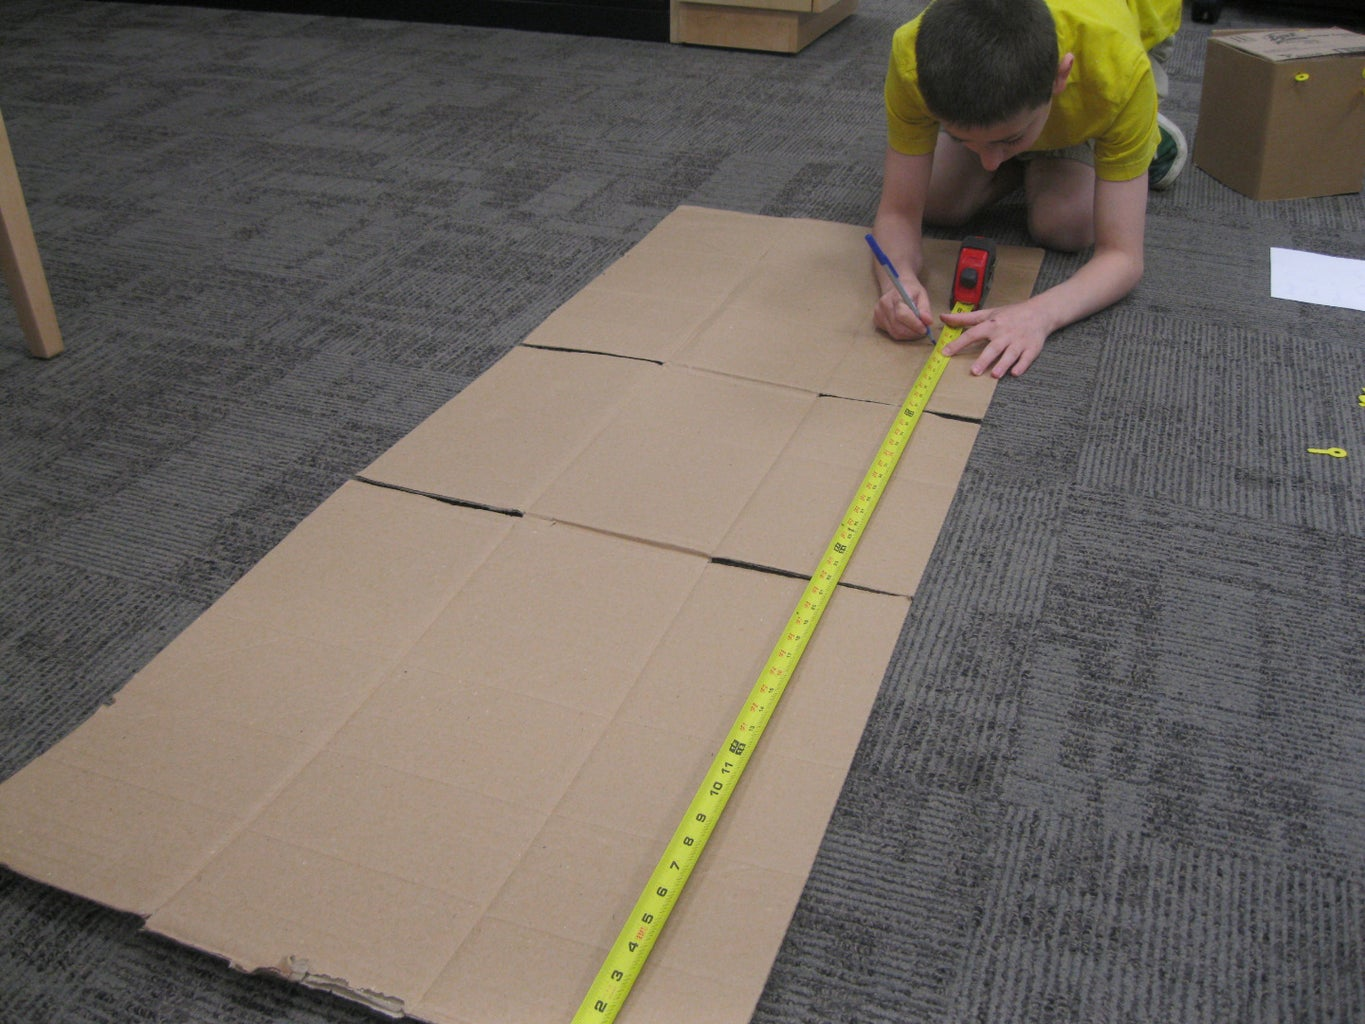 Mark and Cut the Cardboard Box Into Two Pieces of the Correct Size